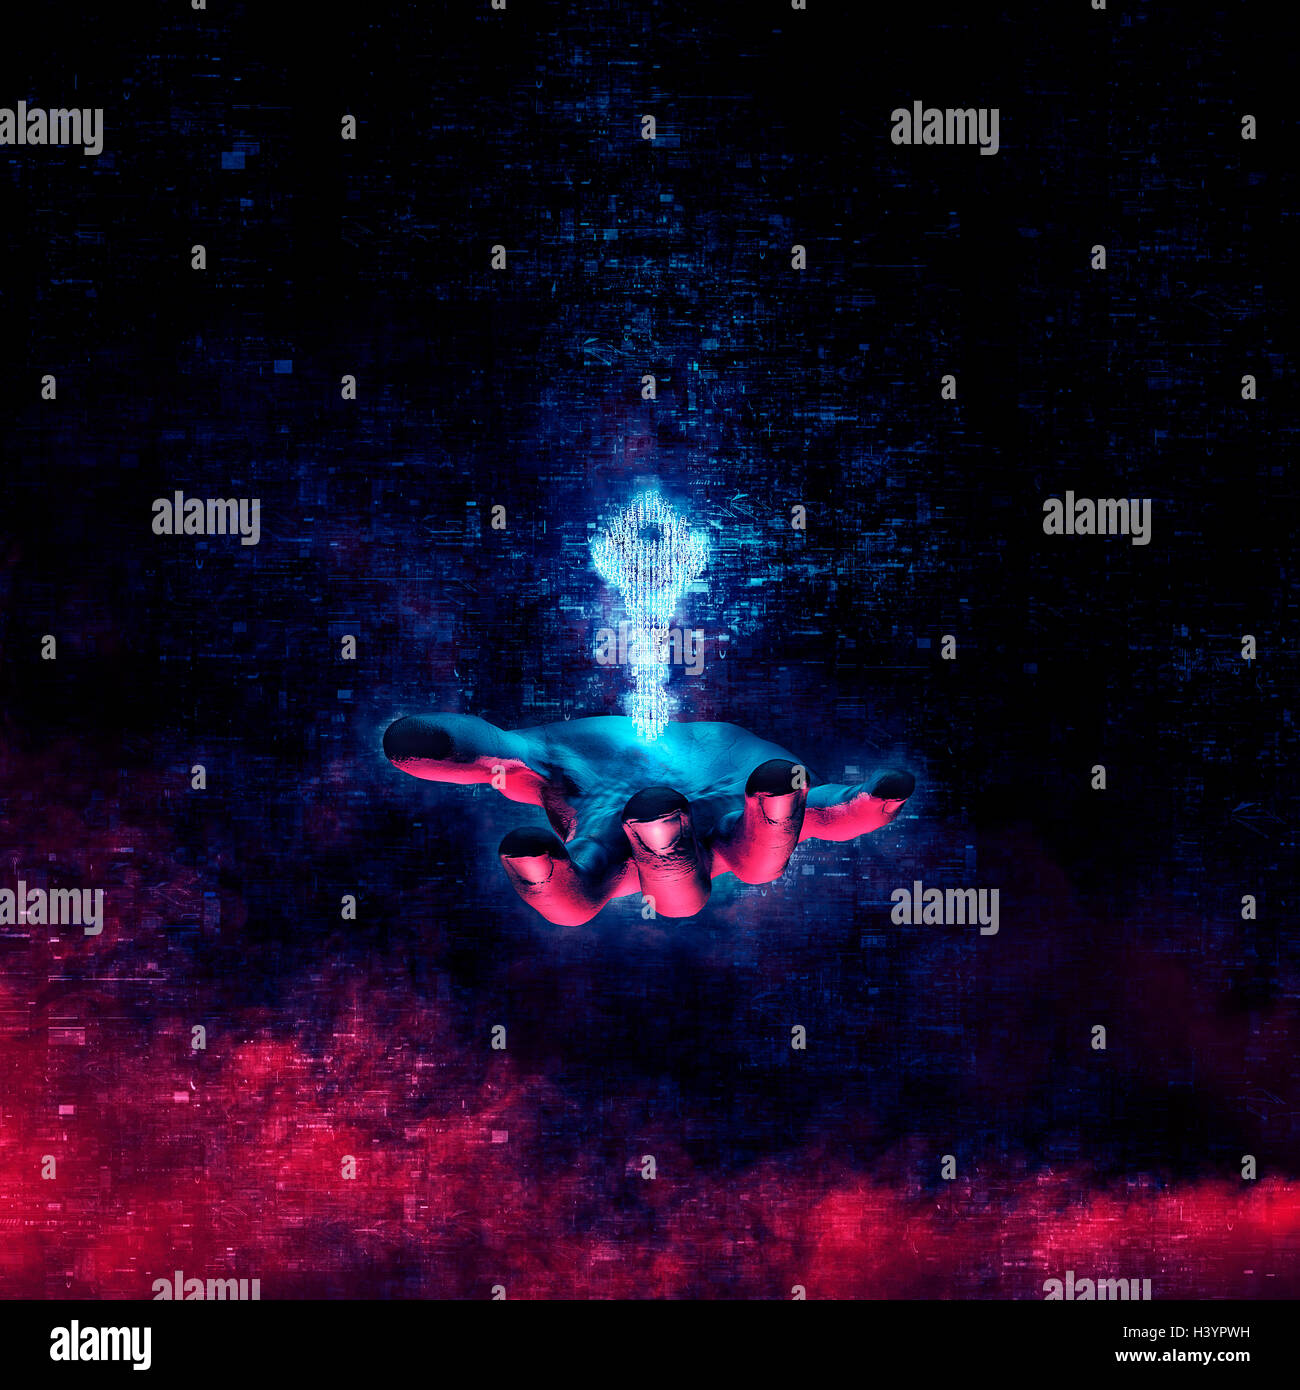 Data security key concept / 3D illustration glowing key formed by binary digits floating above open hand - Stock Image